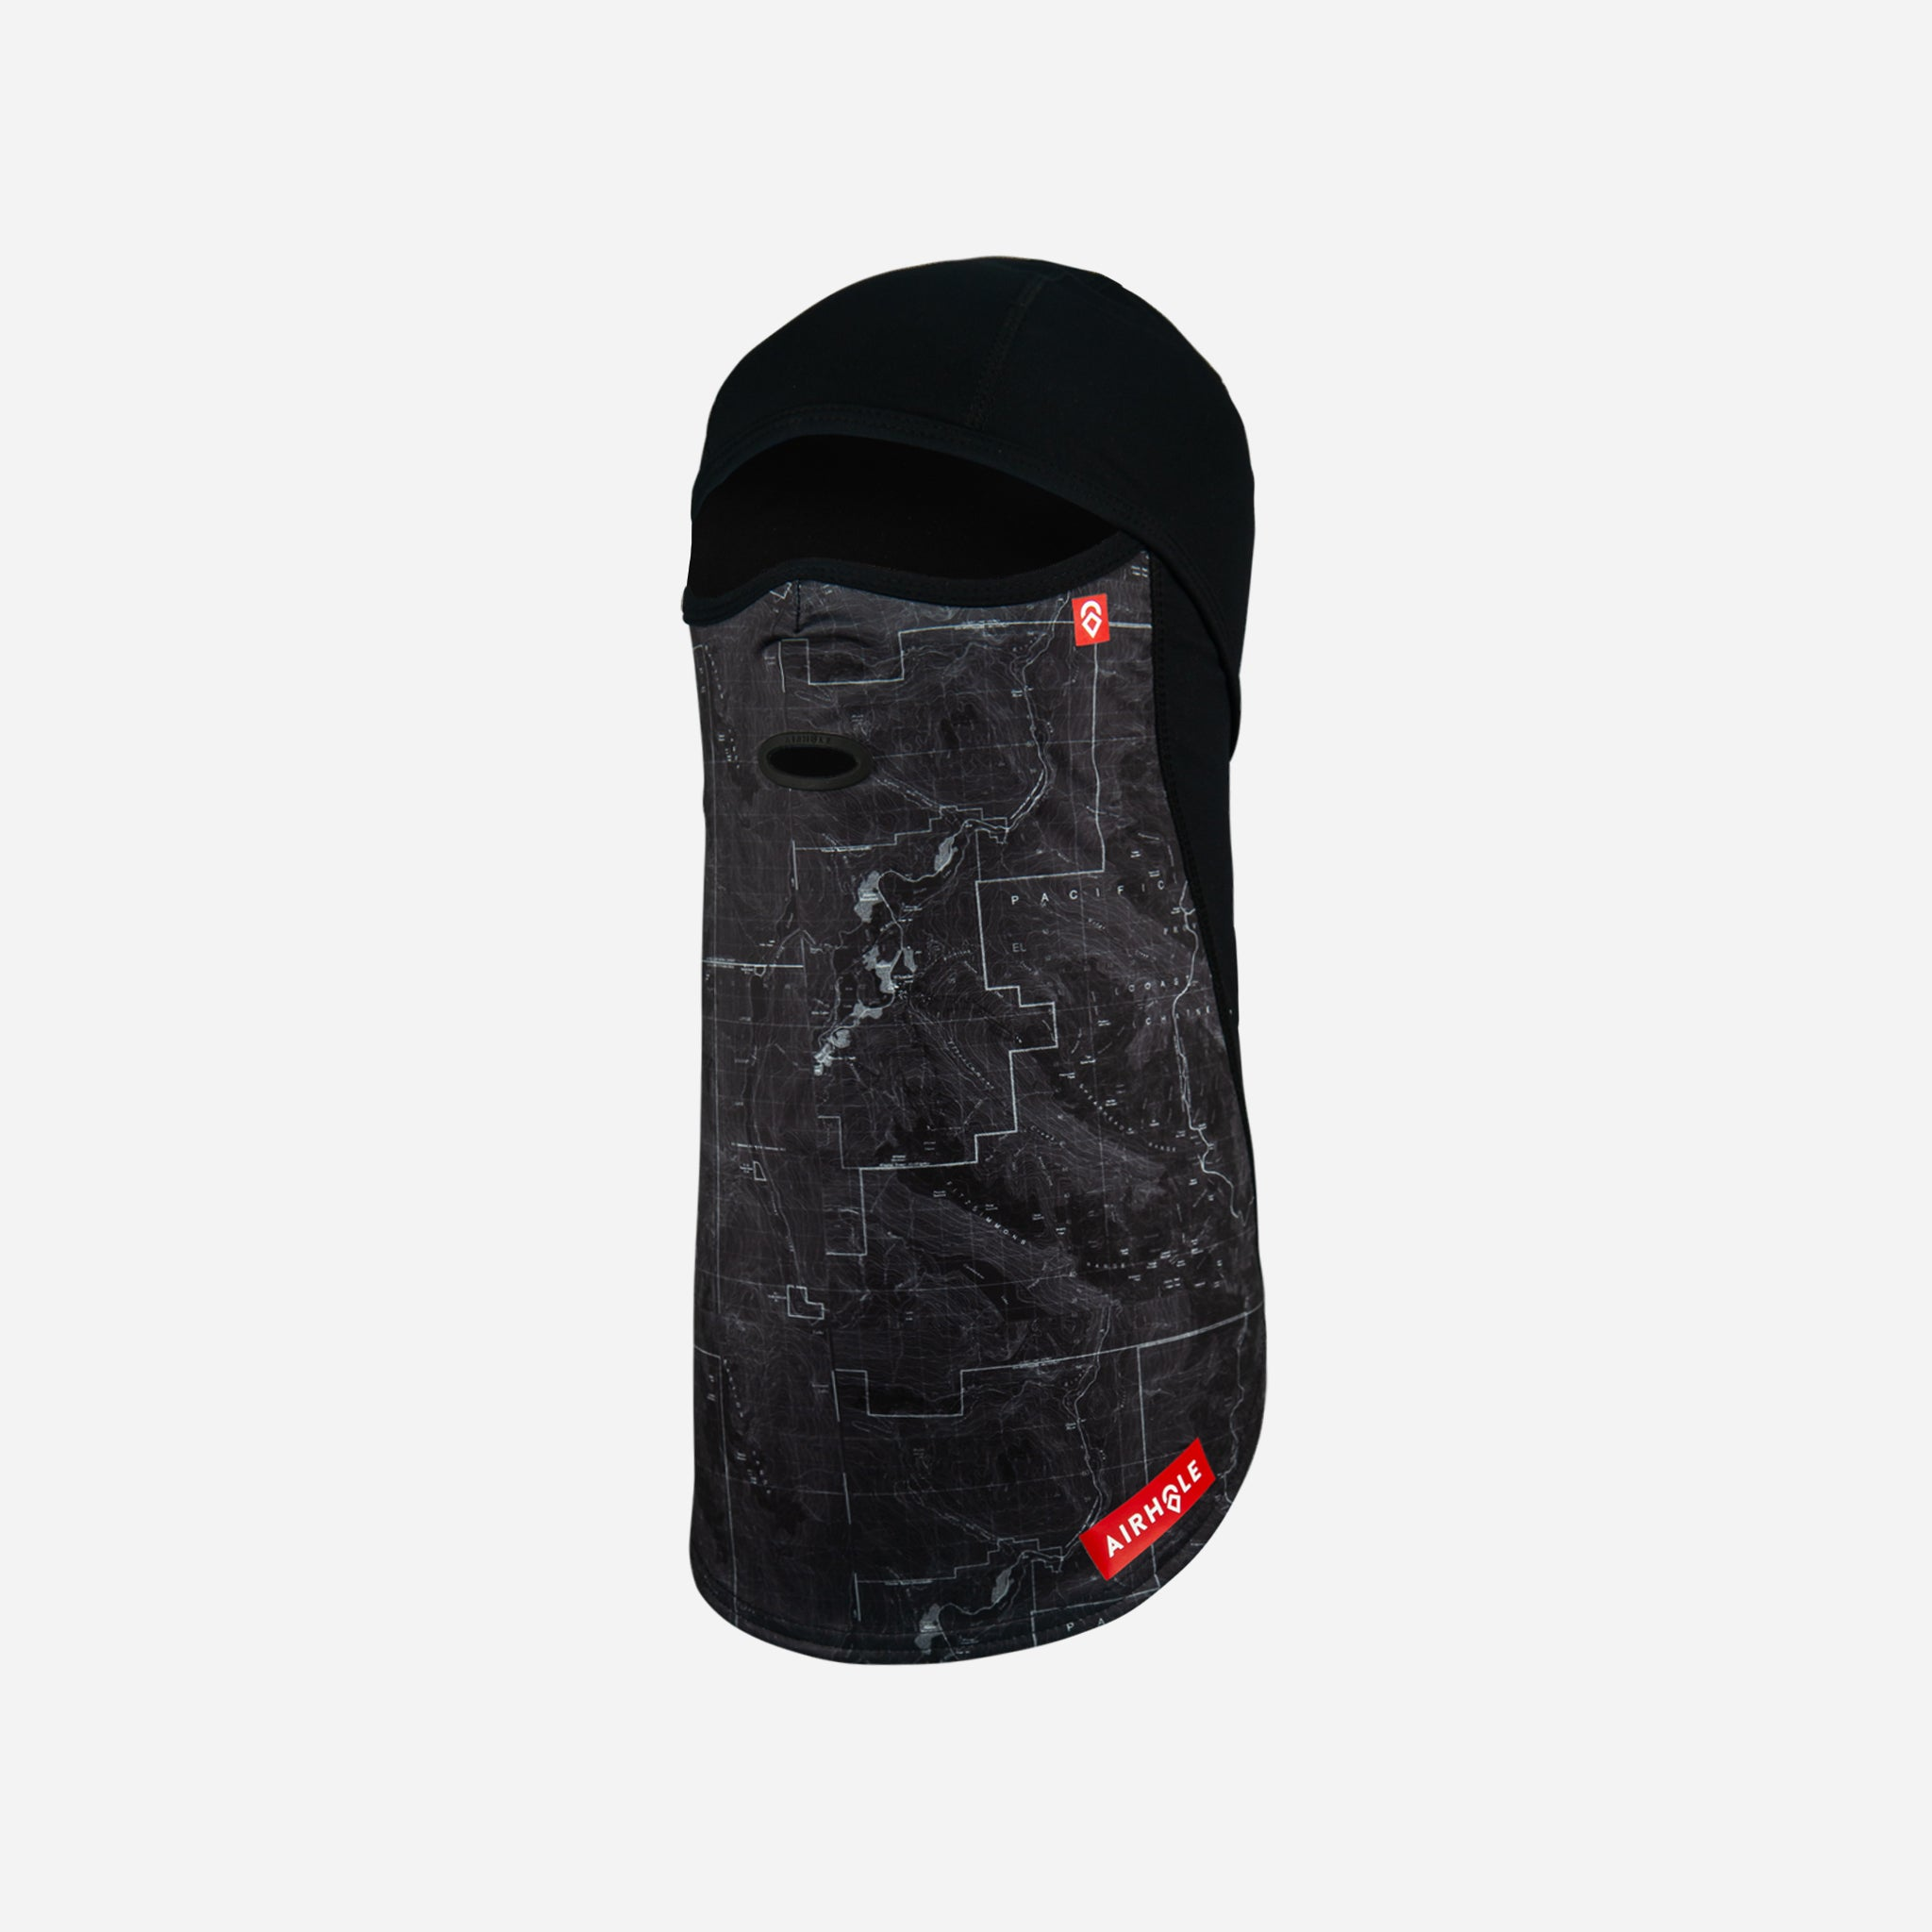 Balaclava Full Hinge 20K Softshell Topographic Black